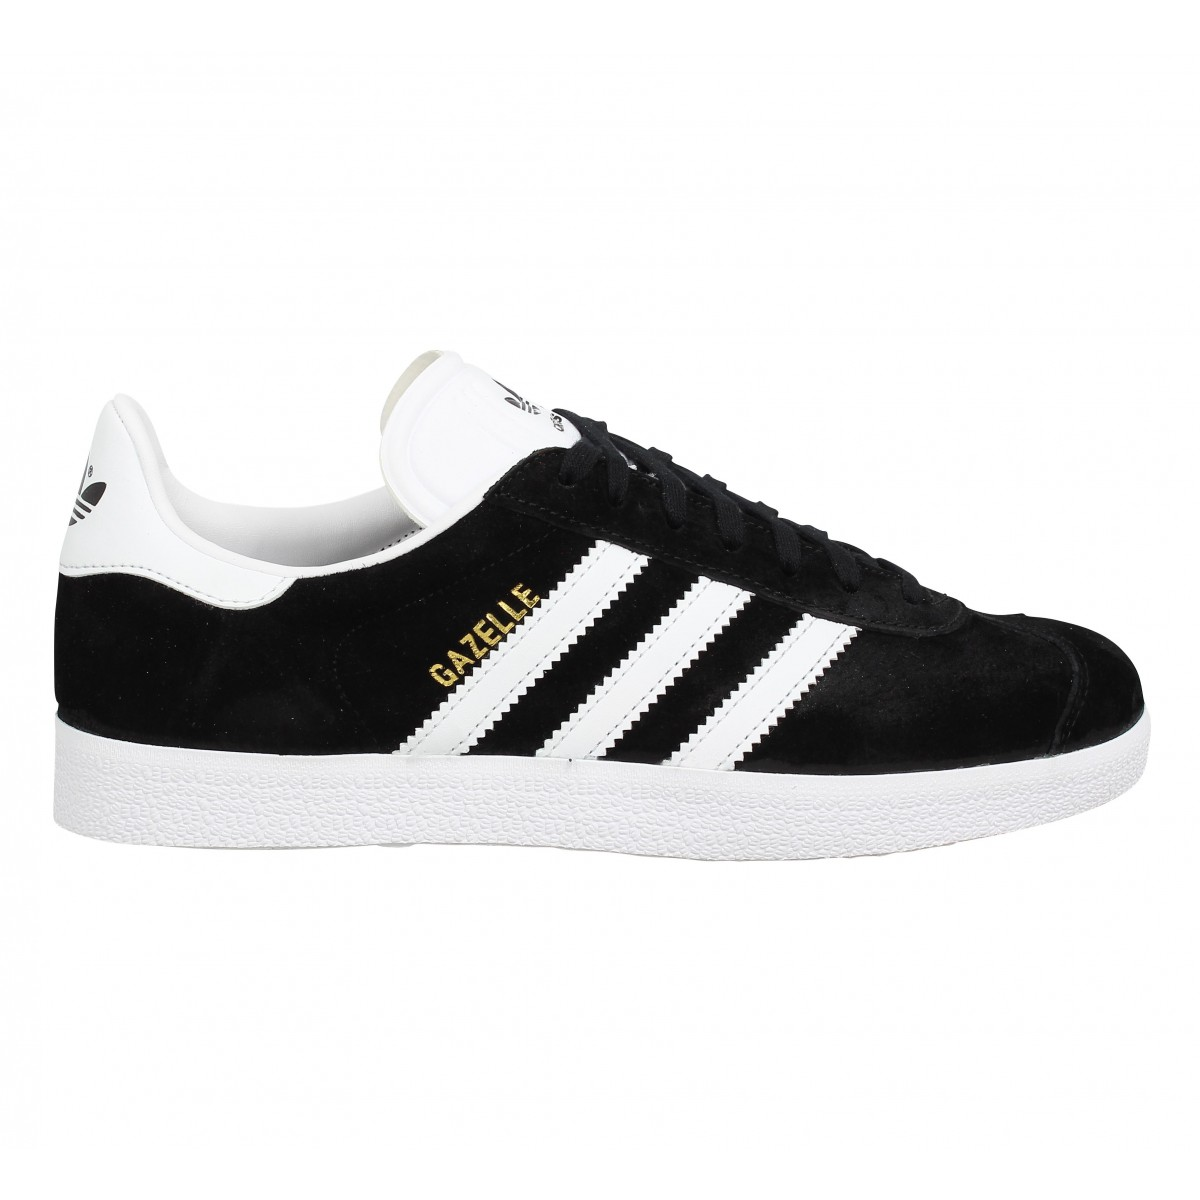 soldes adidas gazelle velours homme noir blanc fanny chaussures. Black Bedroom Furniture Sets. Home Design Ideas